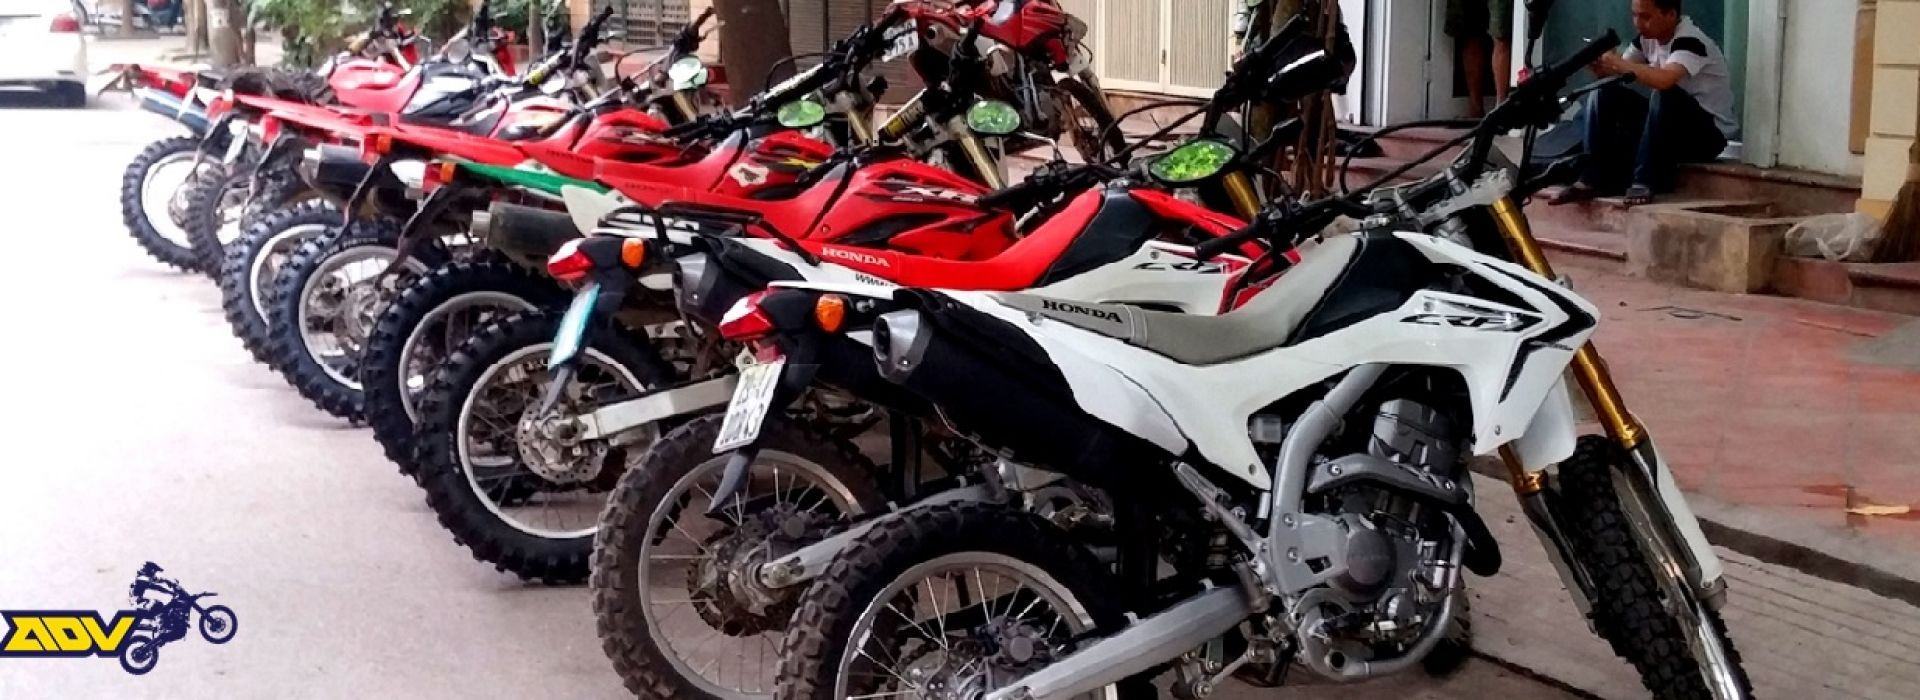 Vietnam Motorcycle rental